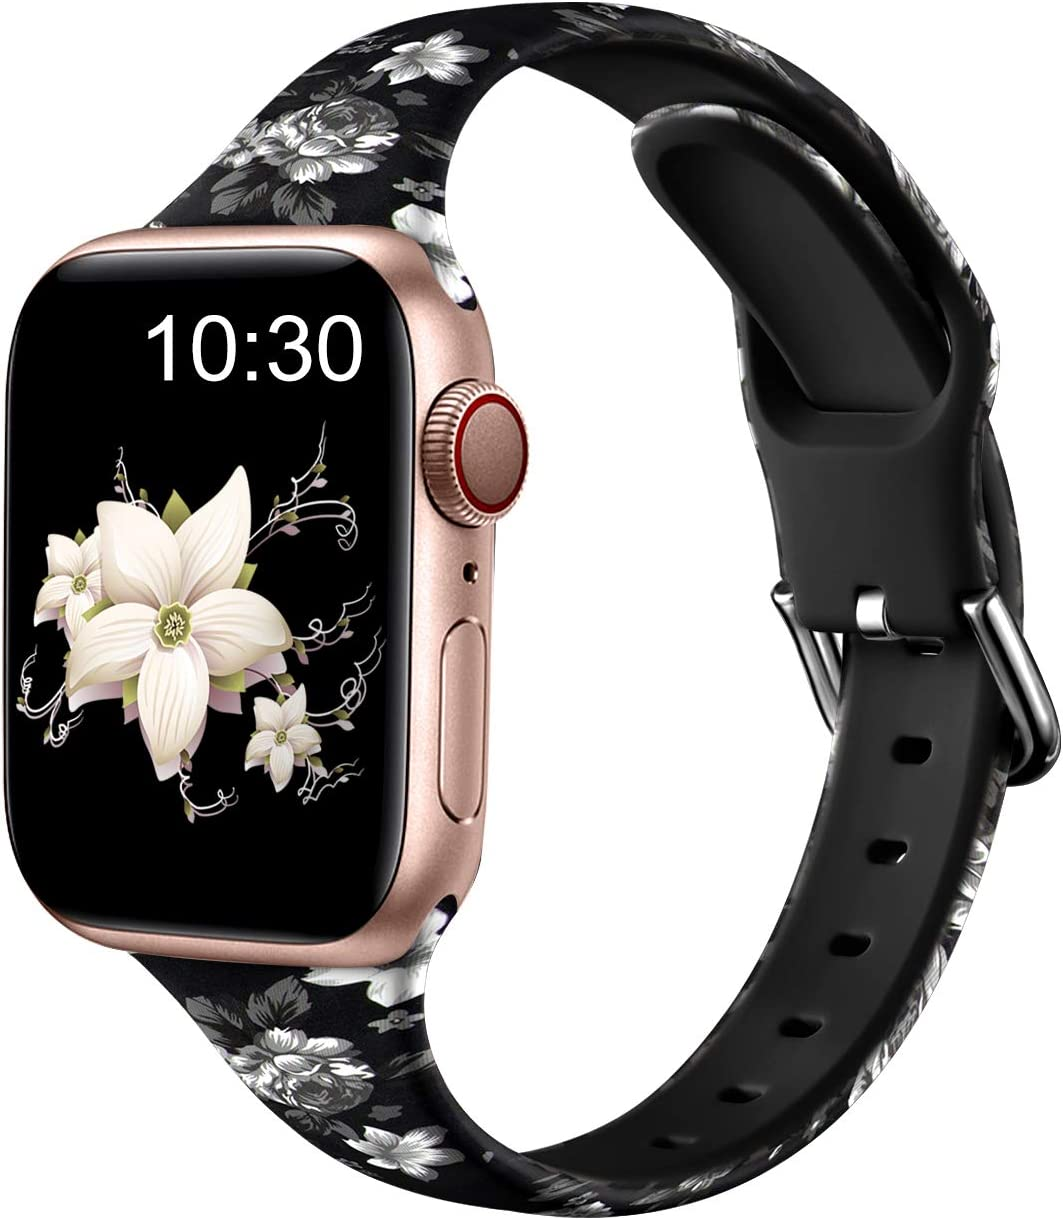 Nofeda Bands Compatible with Apple Watch Band 38mm 40mm iWatch Series 6 5 4 3 2 1 & SE, Slim Silicone Printed Fadeless Replacement Strap Band for Women Men, Gray Flower